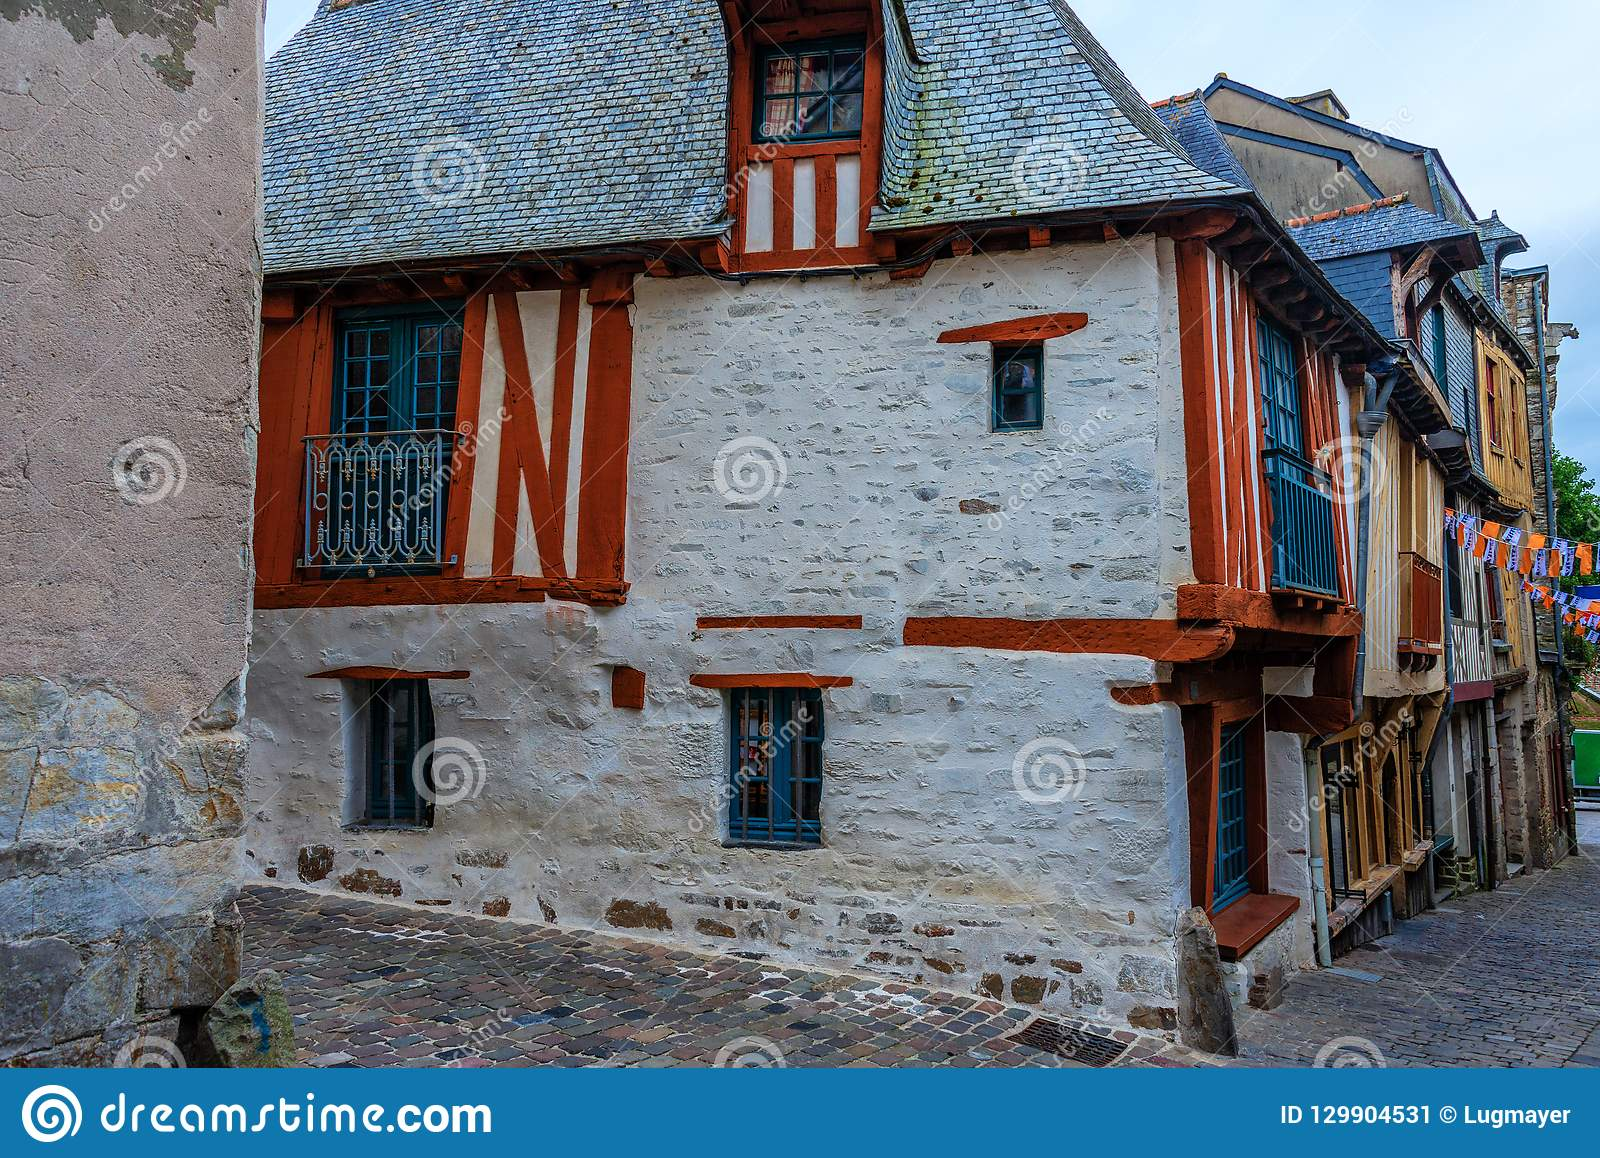 Marvelous Medieval Half Timbered House In Vitre Brittany France Beutiful Home Inspiration Papxelindsey Bellcom